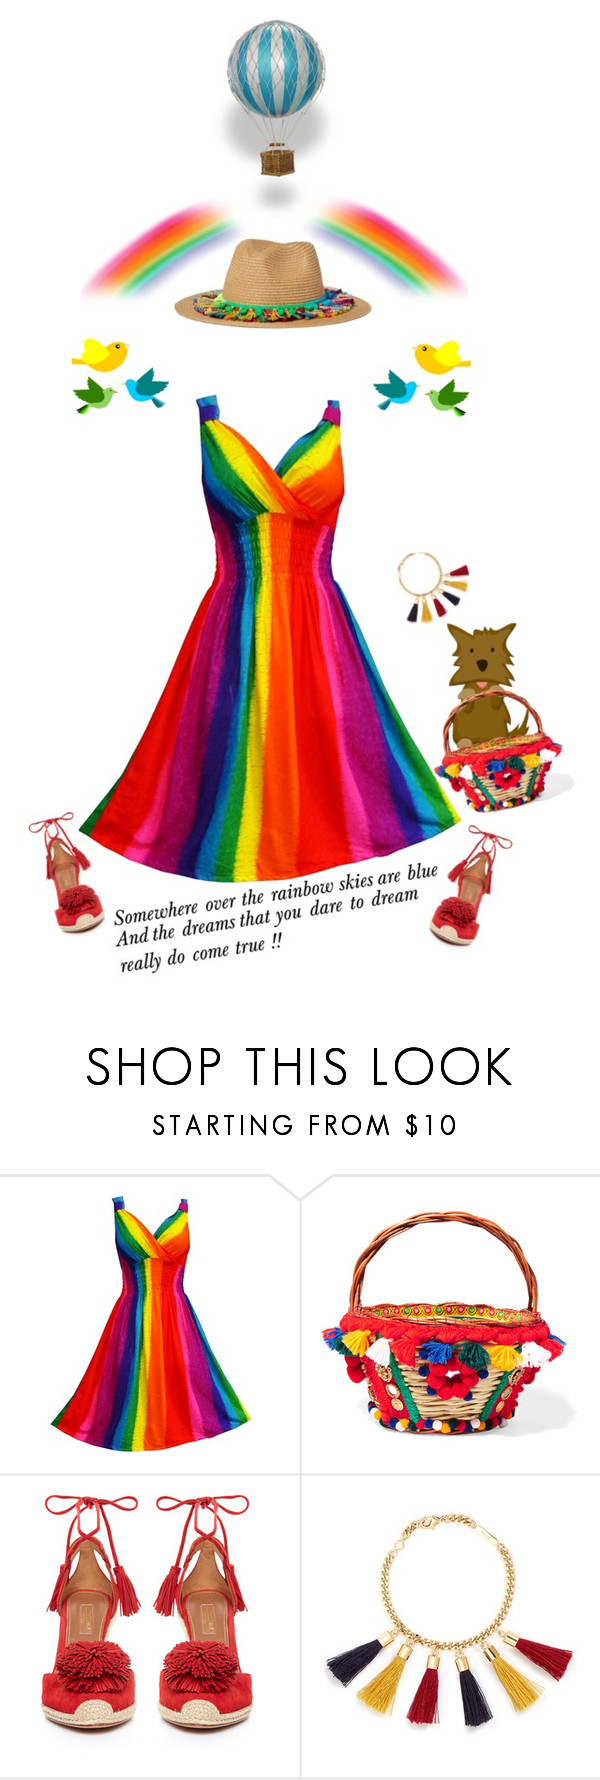 """""""Over the Rainbow'"""" by dianefantasy ❤ liked on Polyvore featuring Dolce&Gabbana, Aquazzura, Chloé, pride, polyvorecommunity and polyvoreeditorial"""